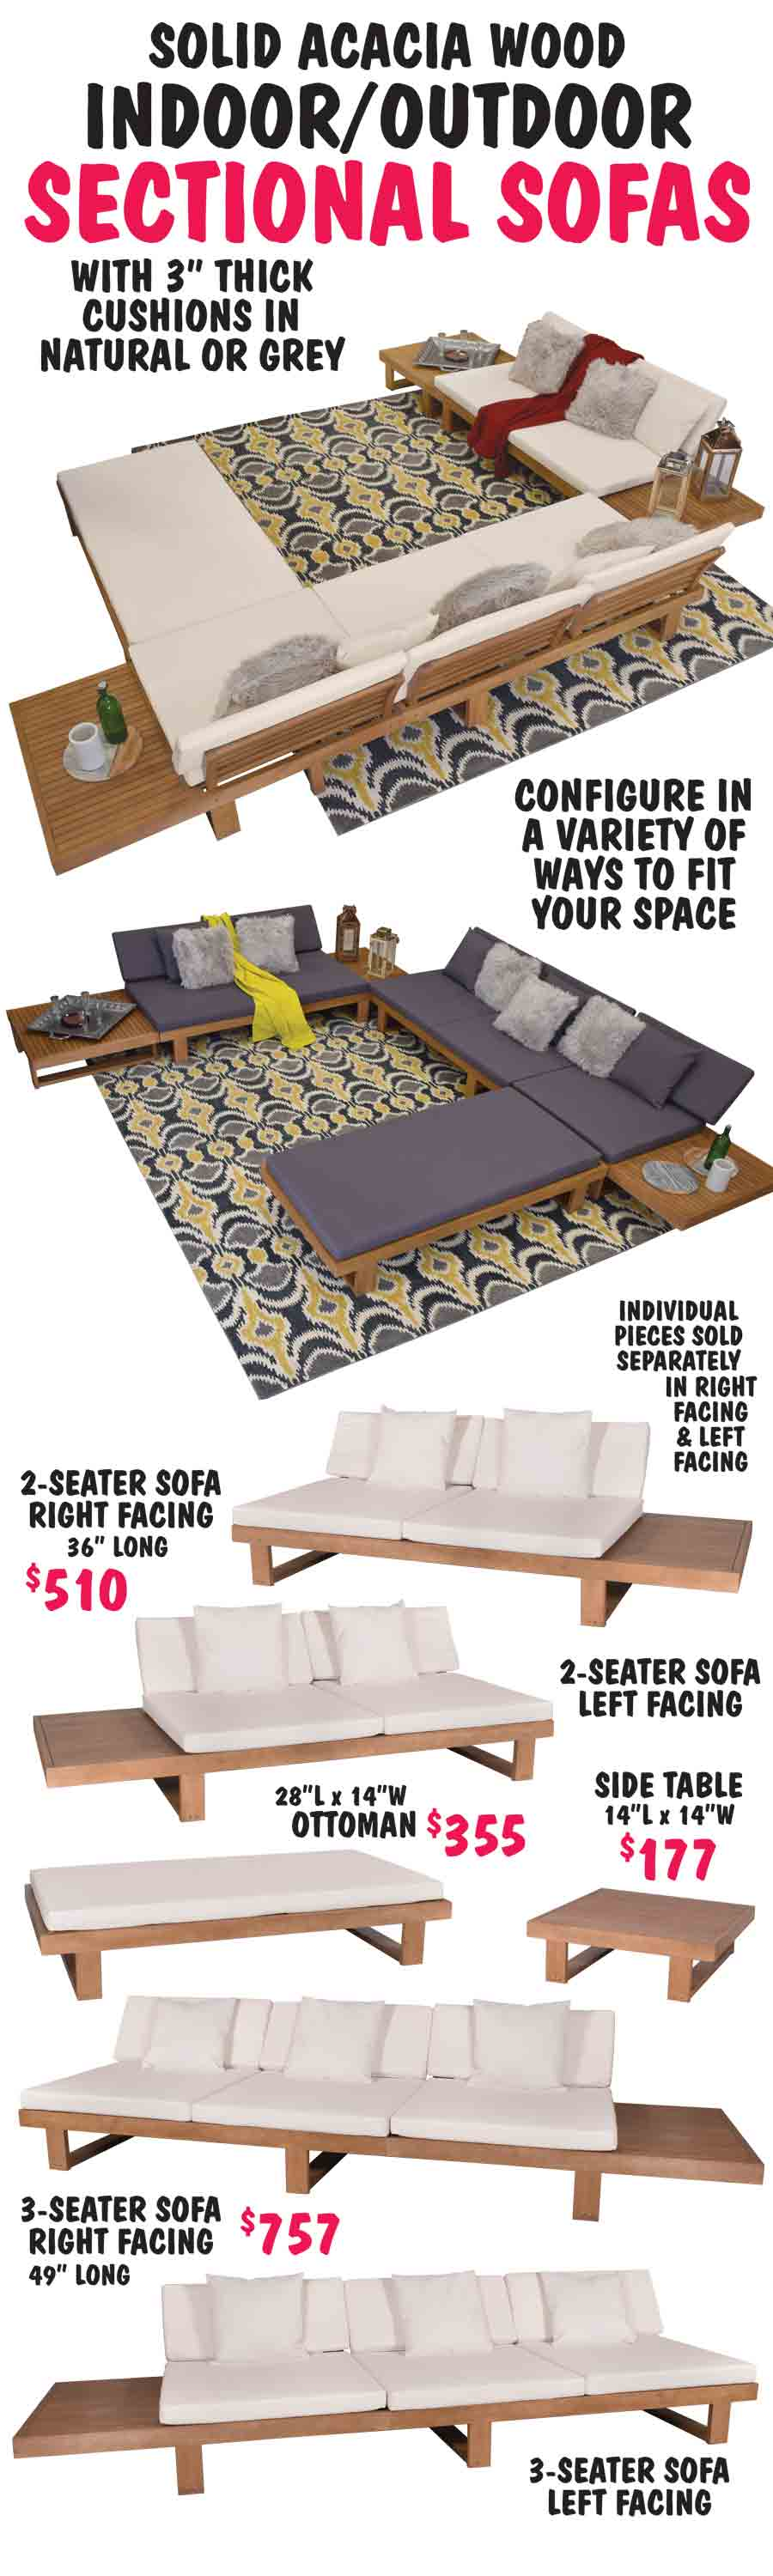 Solid Acacia Wood Indoor/Outdoor Sectional Sofas